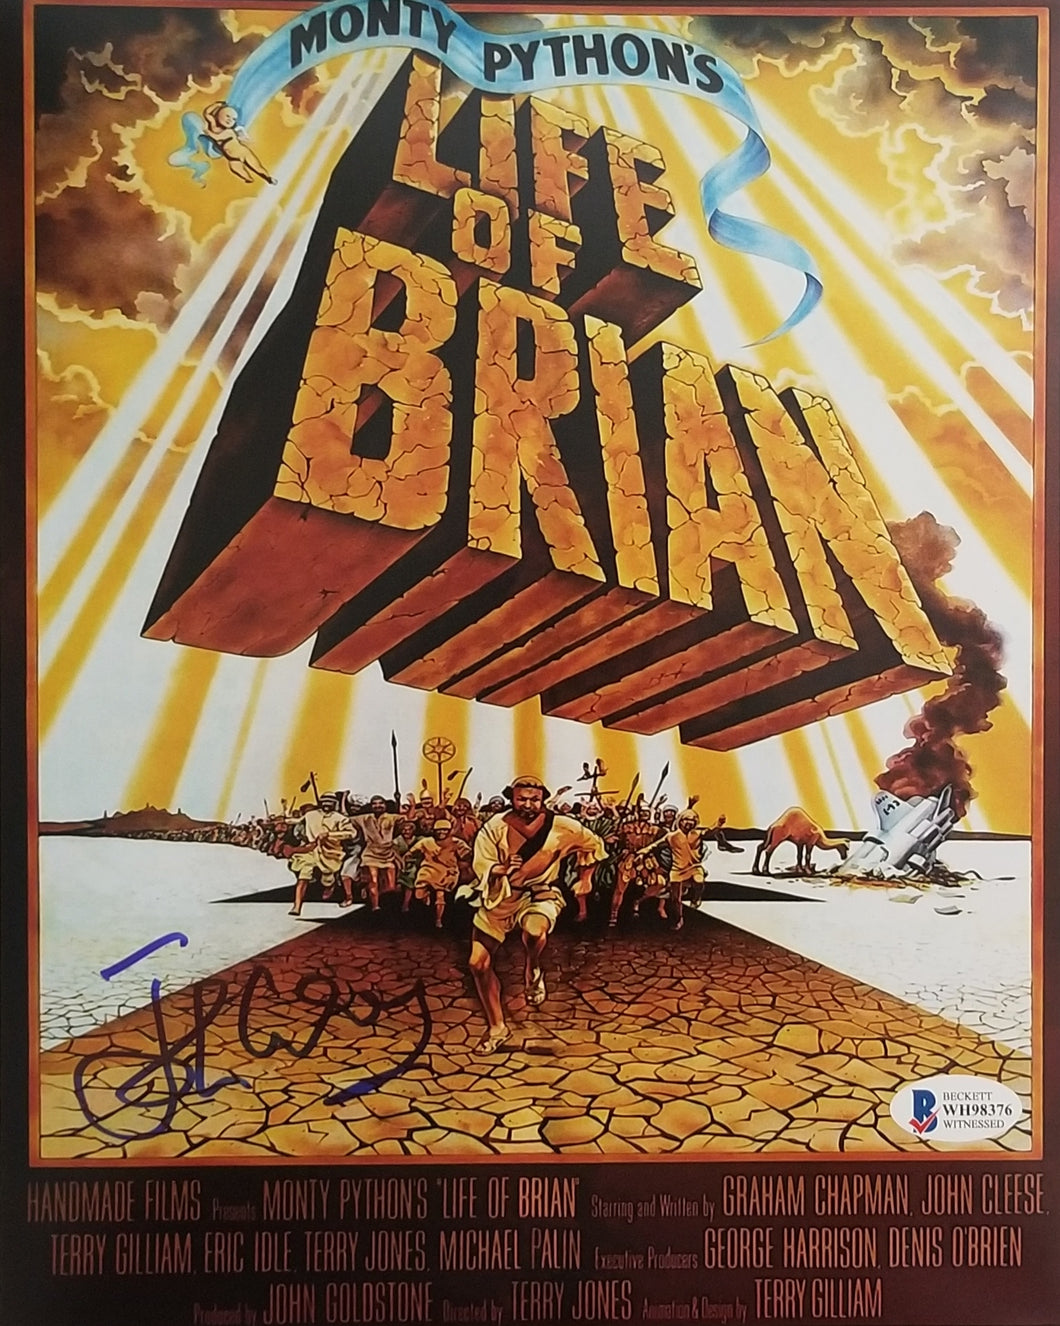 John Cleese - Signed 8x10 Life of Brian Mini Movie Poster